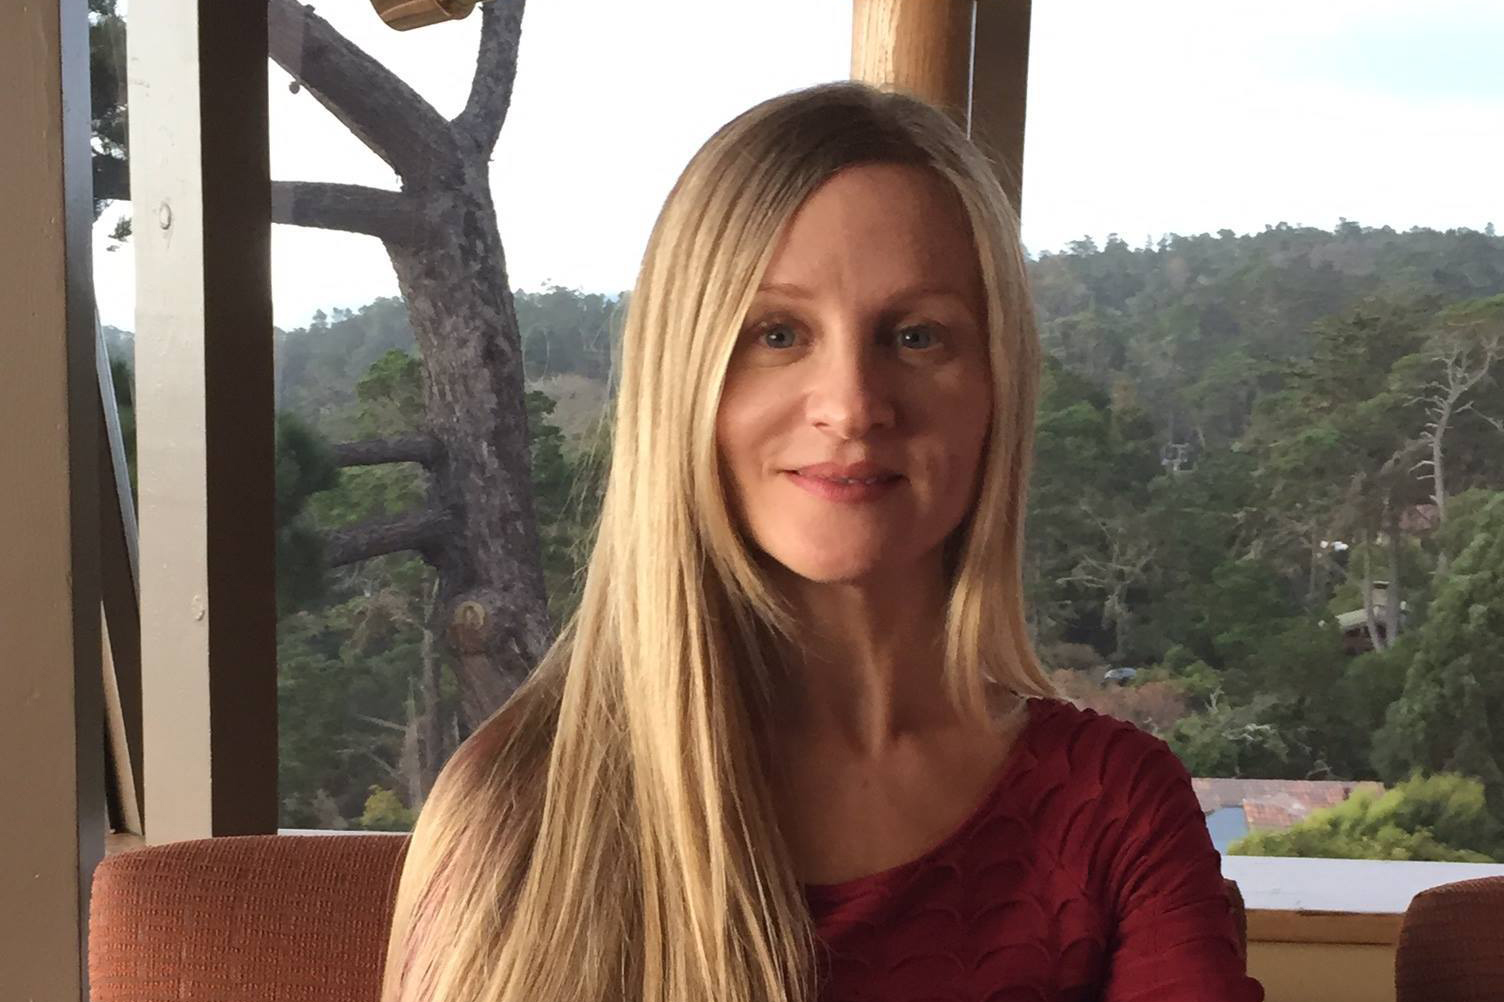 Yelena Hindman - Yelena Hindman is a gifted yoga instructor and natural healing enthusiast. She has traveled the world teaching and perfecting her yoga practice. She has also created a series of herbal detox programs which you can learn about and try at the Healing Vibes Retreat.